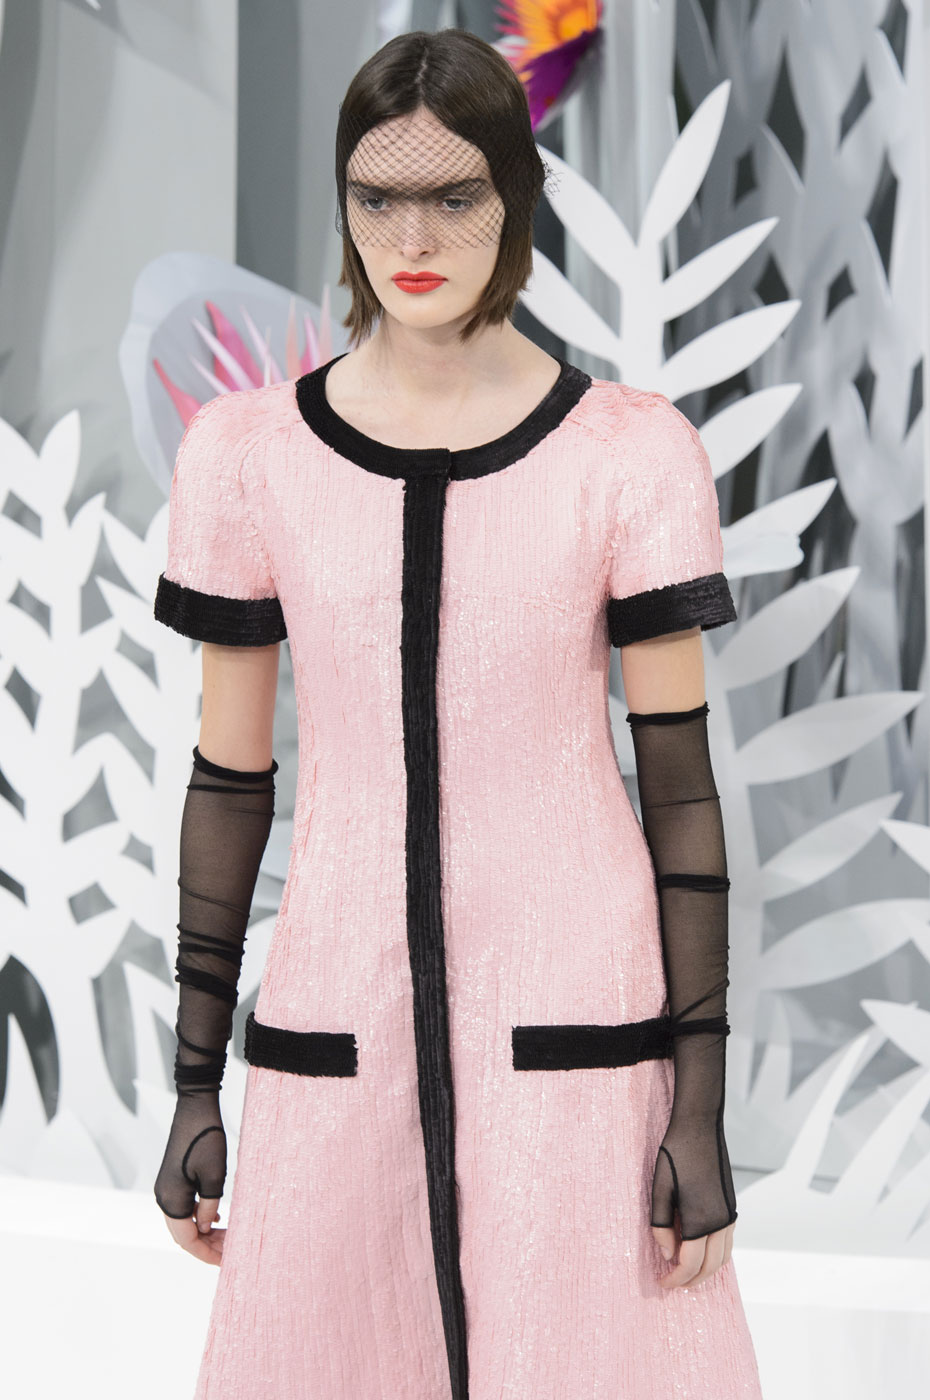 Chanel-fashion-runway-show-haute-couture-paris-spring-summer-2015-the-impression-116